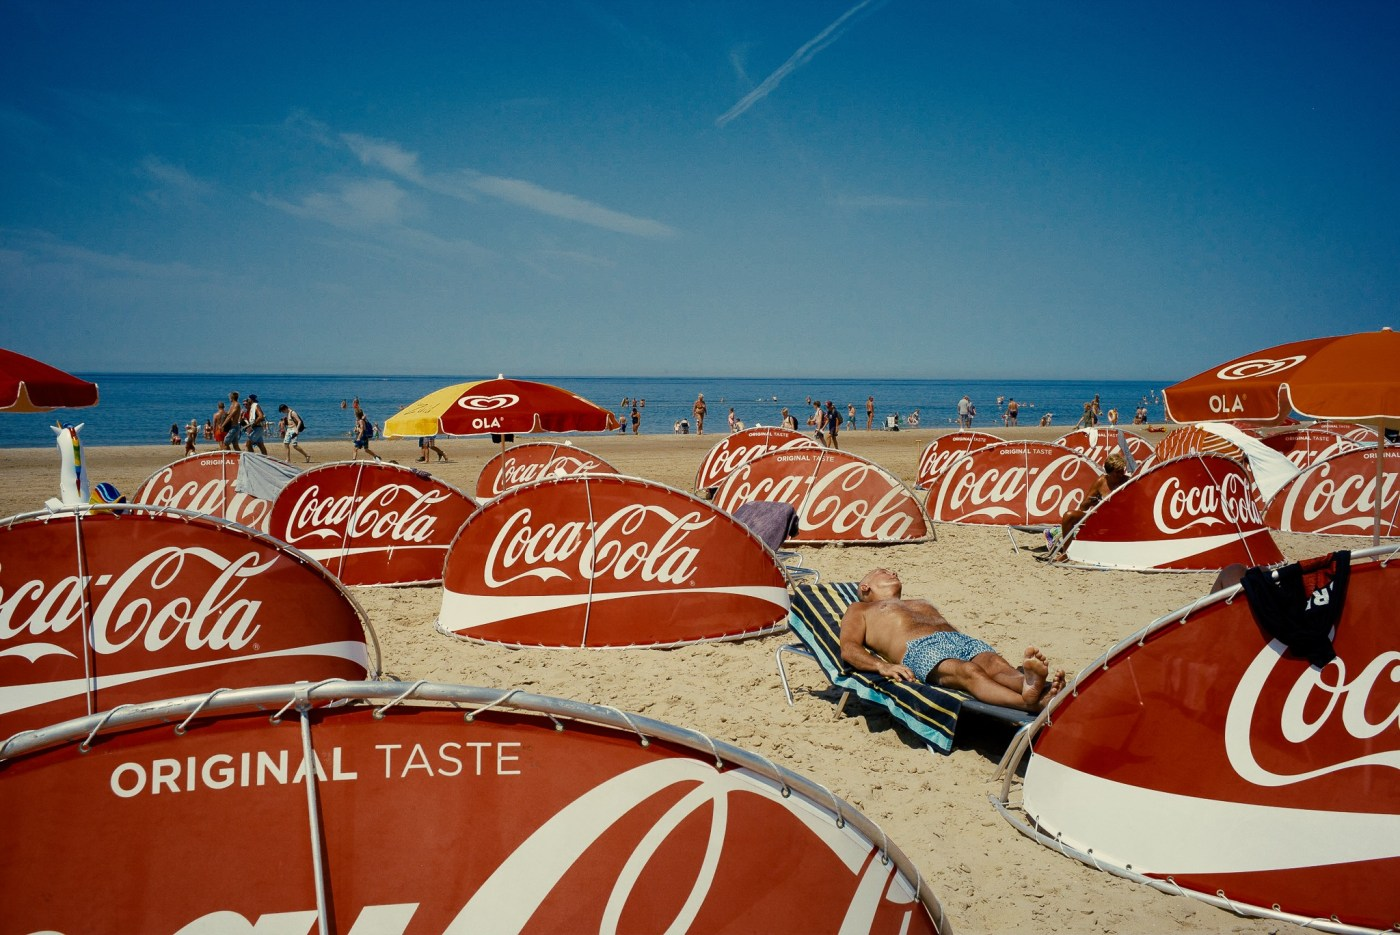 Beach Coca Cola by André Duhme